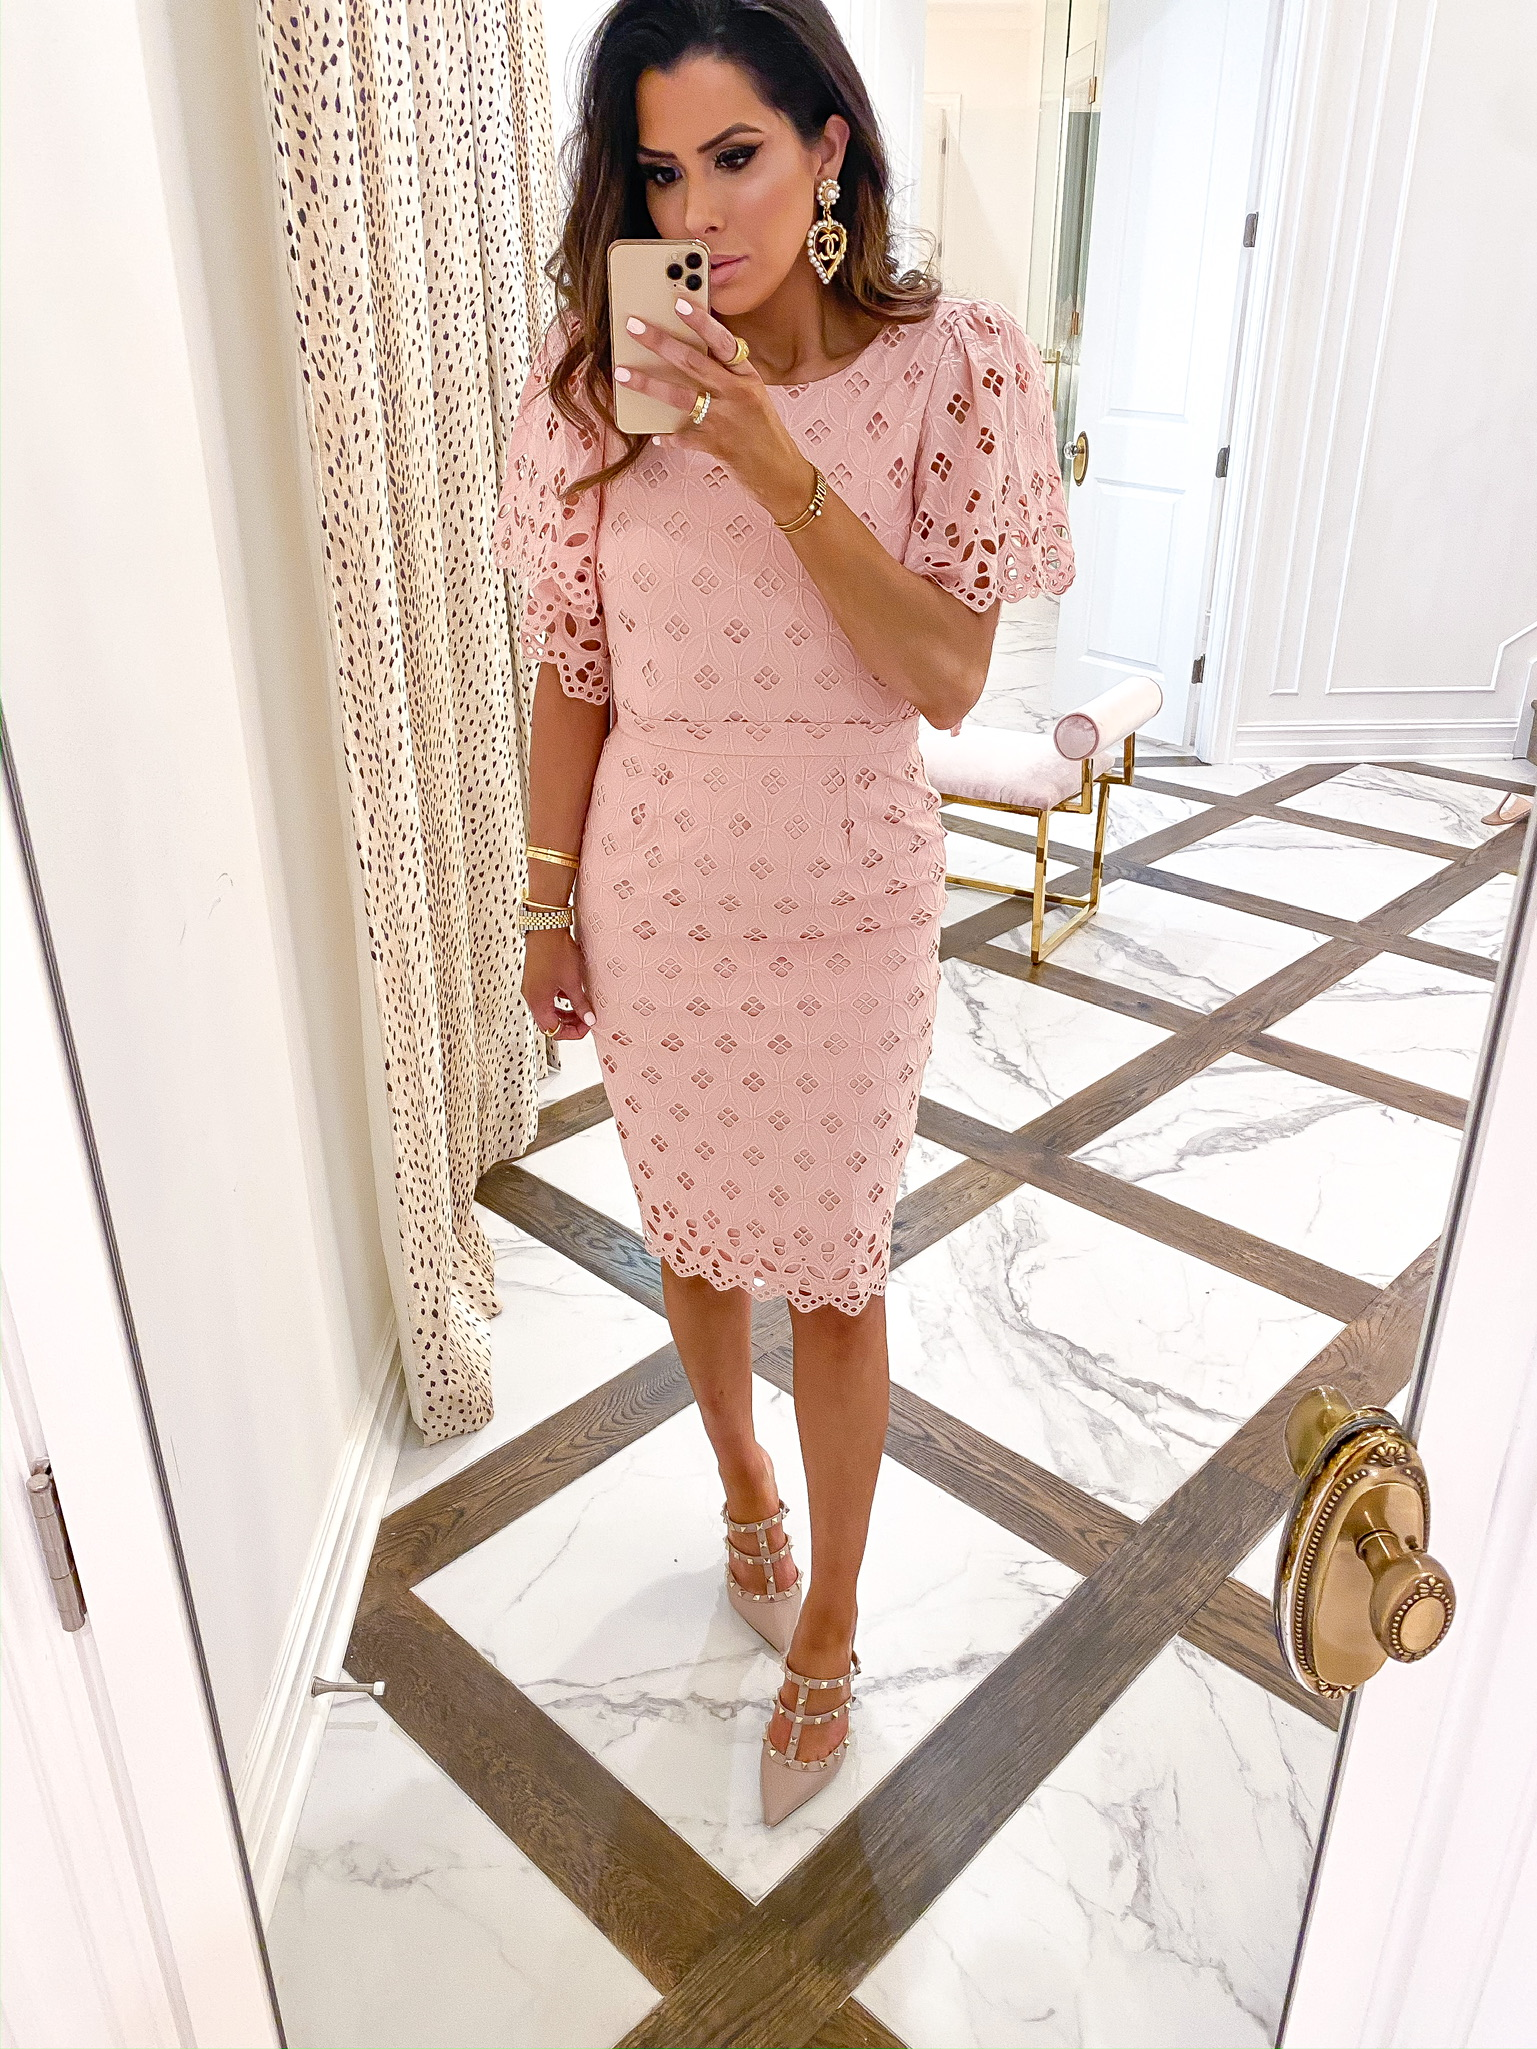 Valentine's Day Outfit Ideas by popular US fashion blog, The Sweetest Thing: image of a woman wearing a Nordstrom Eyelet Sheath Dress RACHEL PARCELL, Nordstrom Rockstud T-Strap Pump VALENTINO GARAVANI, Chanel earrings, Cartier rings, and Dior and Cartier bracelets.